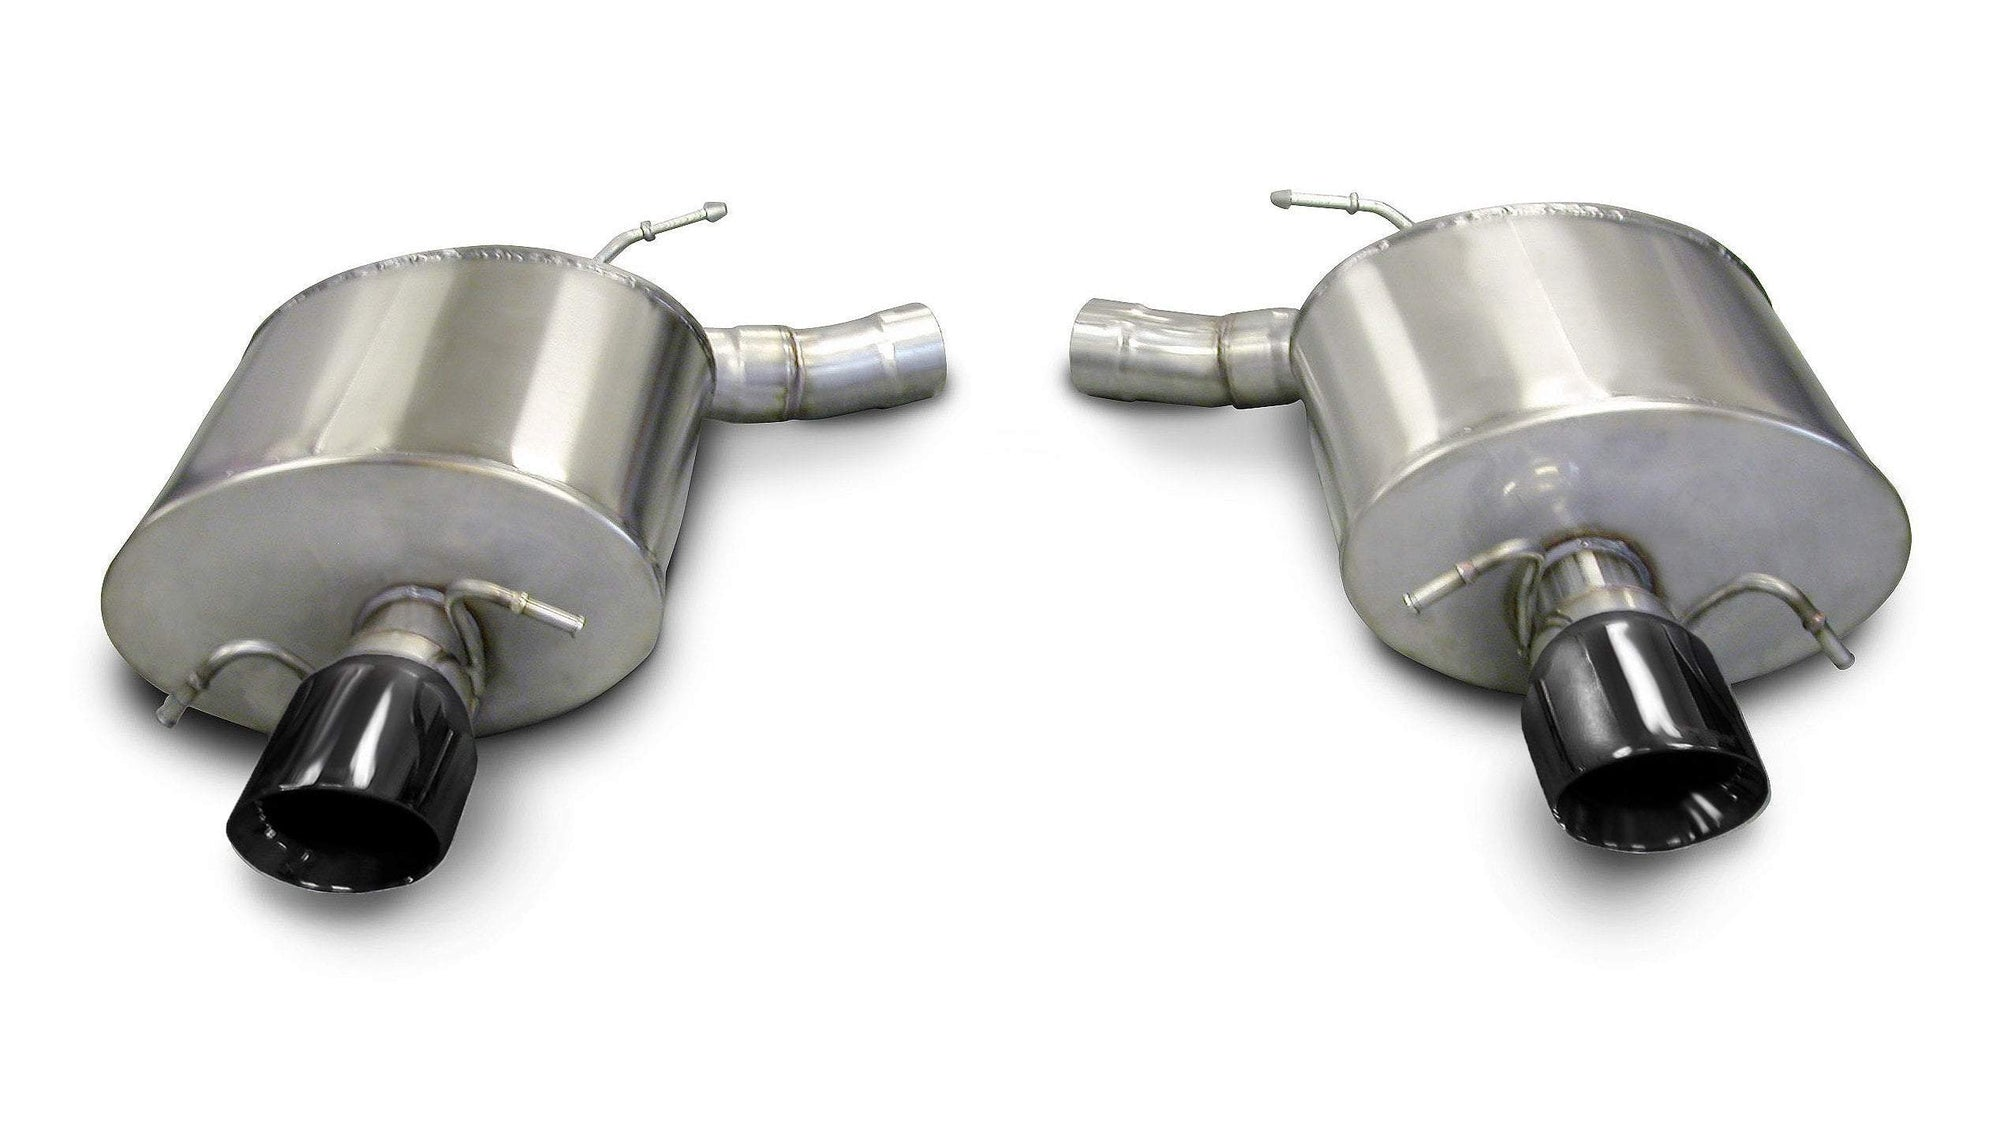 "CORSA PERFORMANCE Axle-Back Exhaust Polished / Touring / Dual Rear - Single 4.0in 2009-2014 Cadillac CTS-V 6.2L V8 Sedan 2.5"" Dual Rear Exit Axle-Back Exhaust System with 4.0"" Tips (14940) Touring Sound Level"